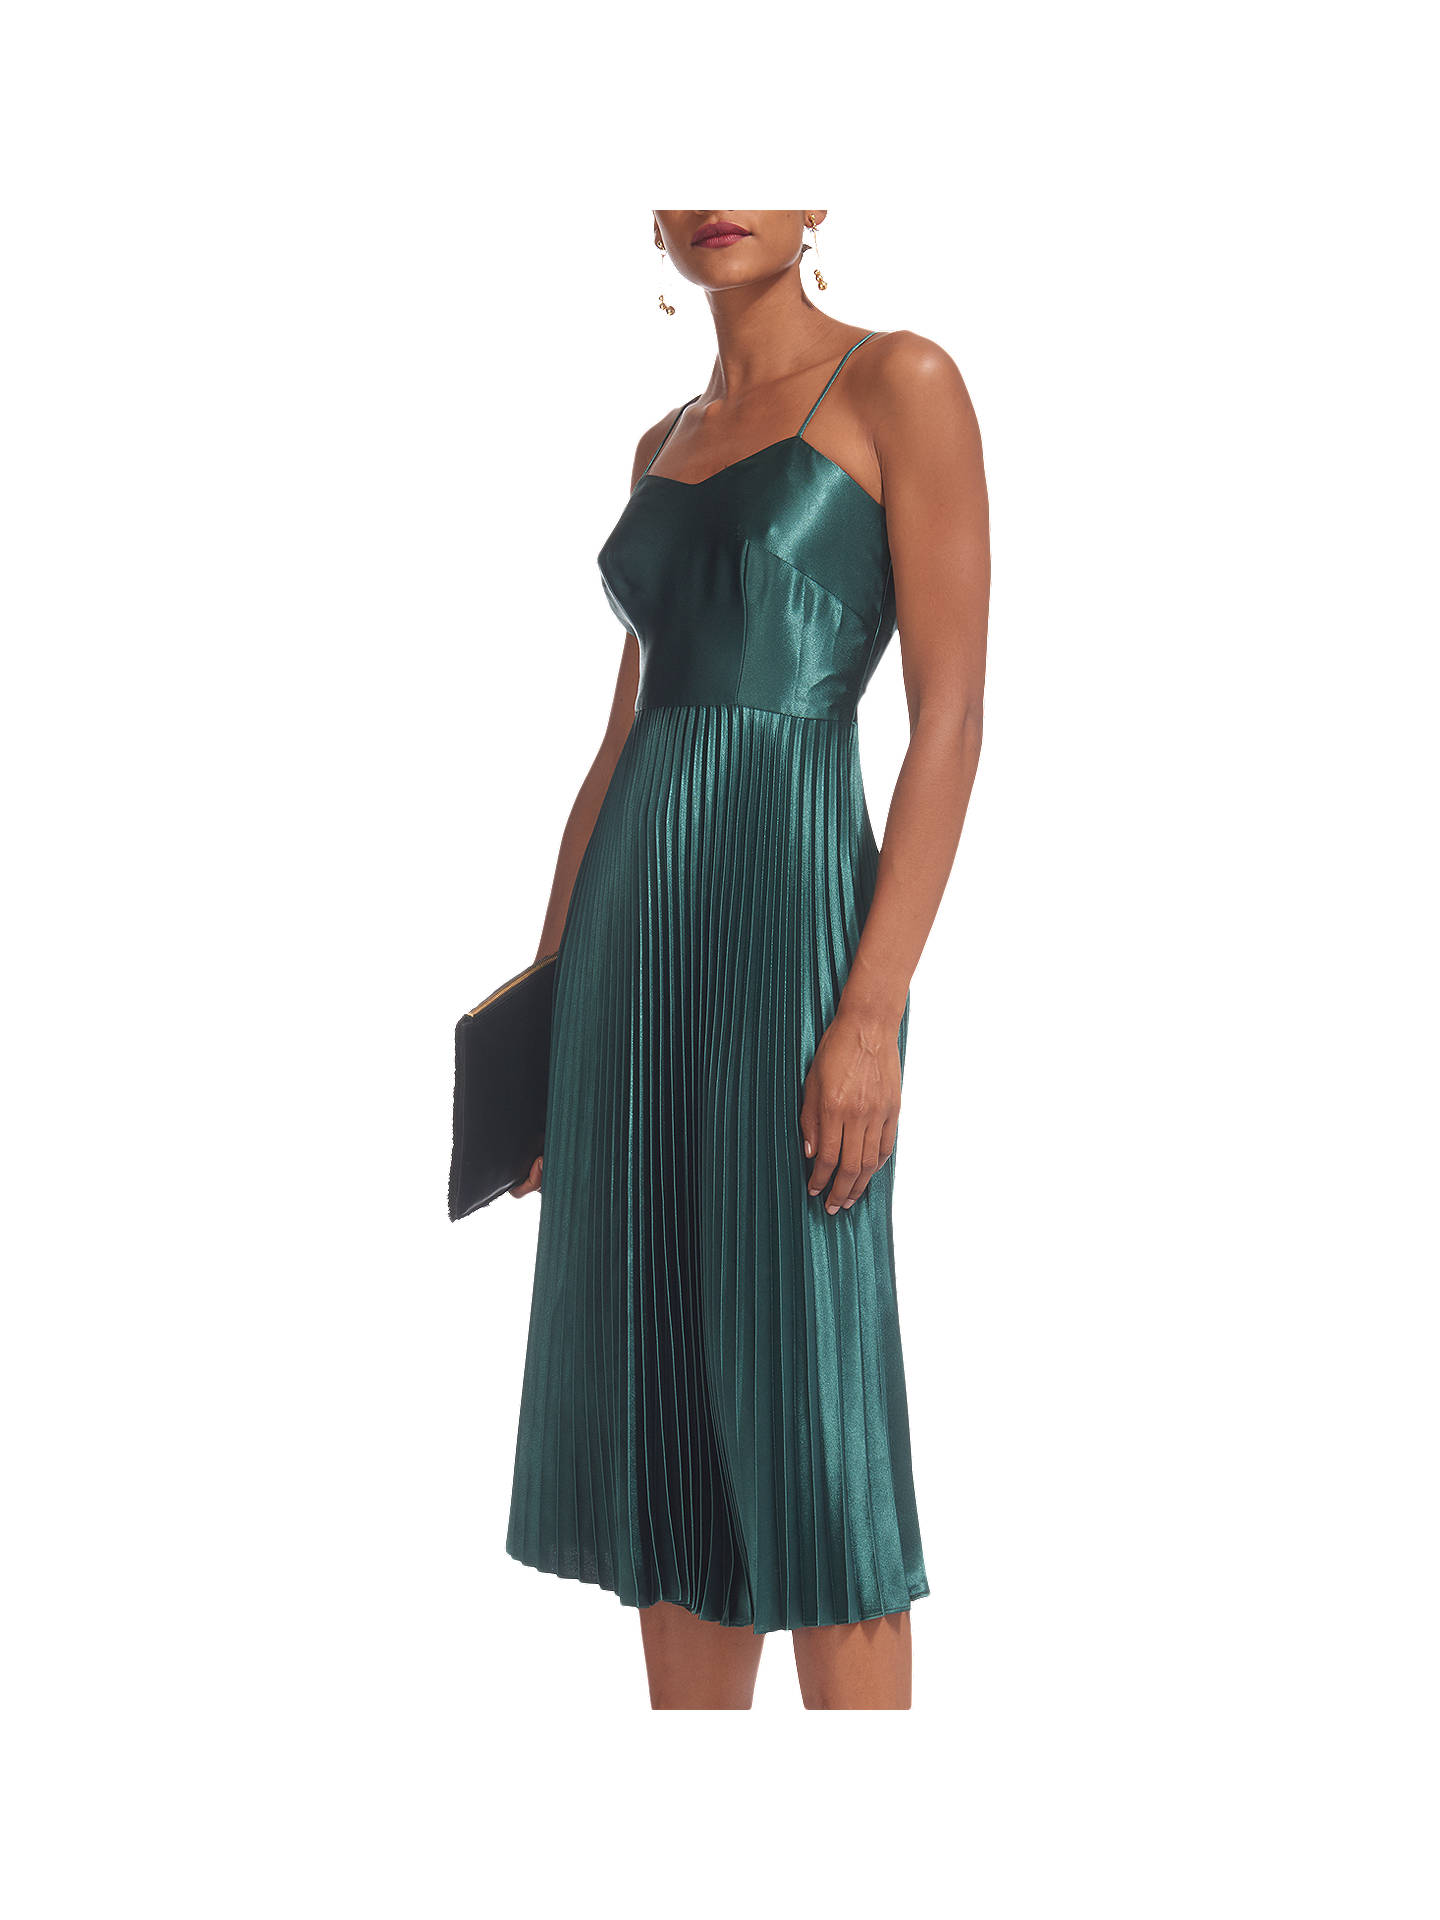 fb8605fc6 Buy Whistles Satin Pleated Strappy Dress, Mineral Green, 6 Online at  johnlewis.com ...